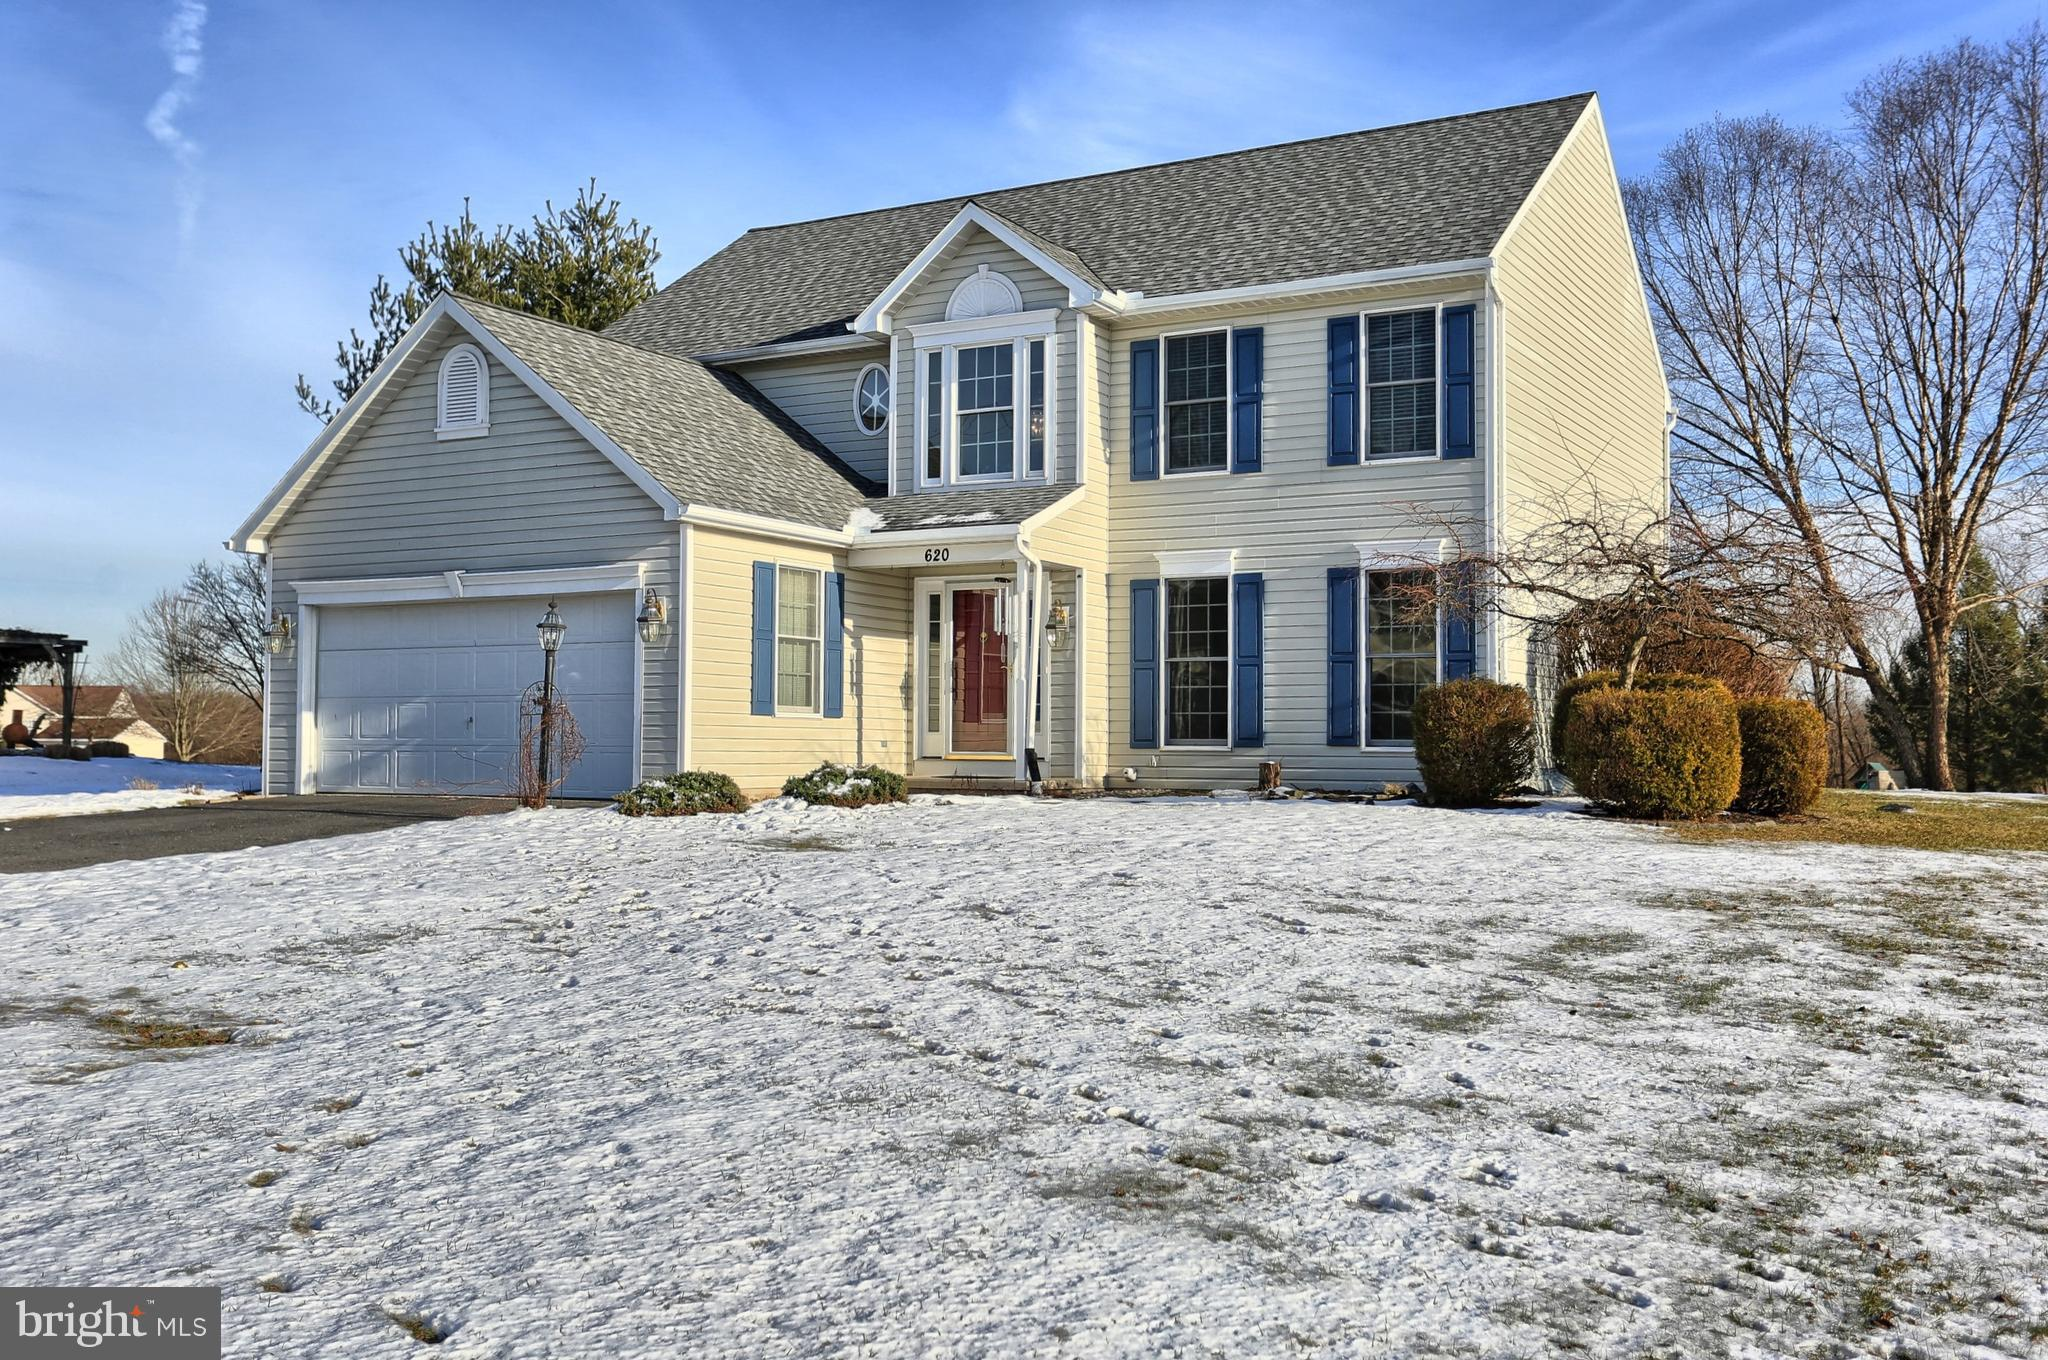 620 WHISLER ROAD, ETTERS, PA 17319